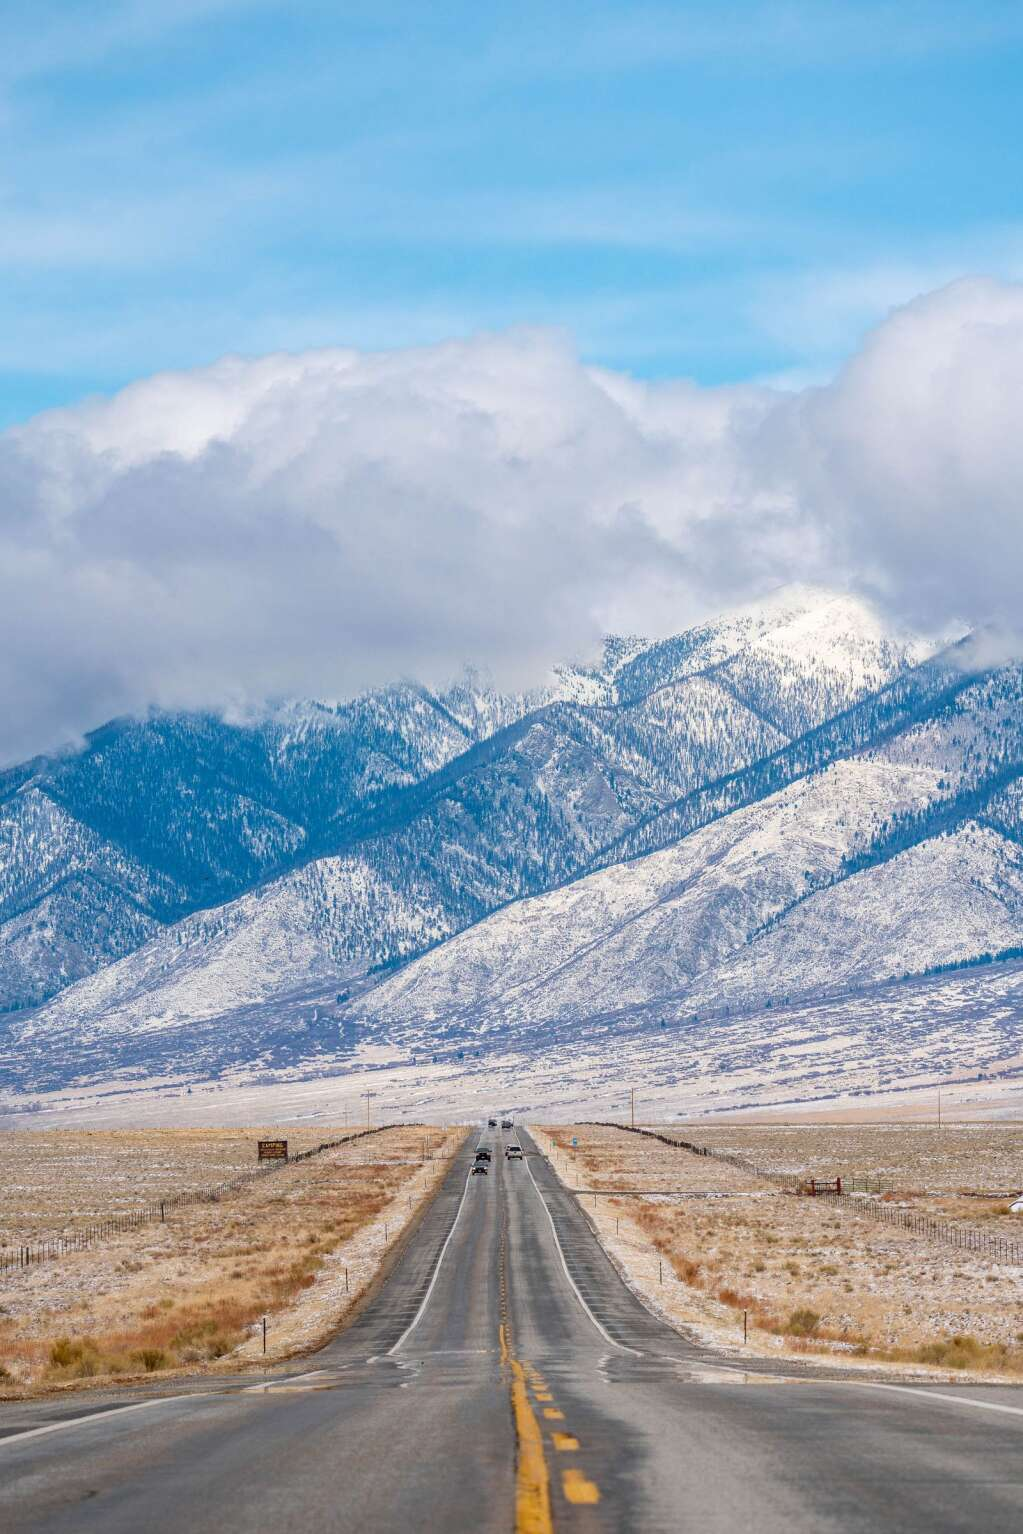 The view heading north on Highway 285 just past Alamosa, looking at Methodist Mountain, on the way home from Taos. | Craig Turpin/Rising Sun Photog